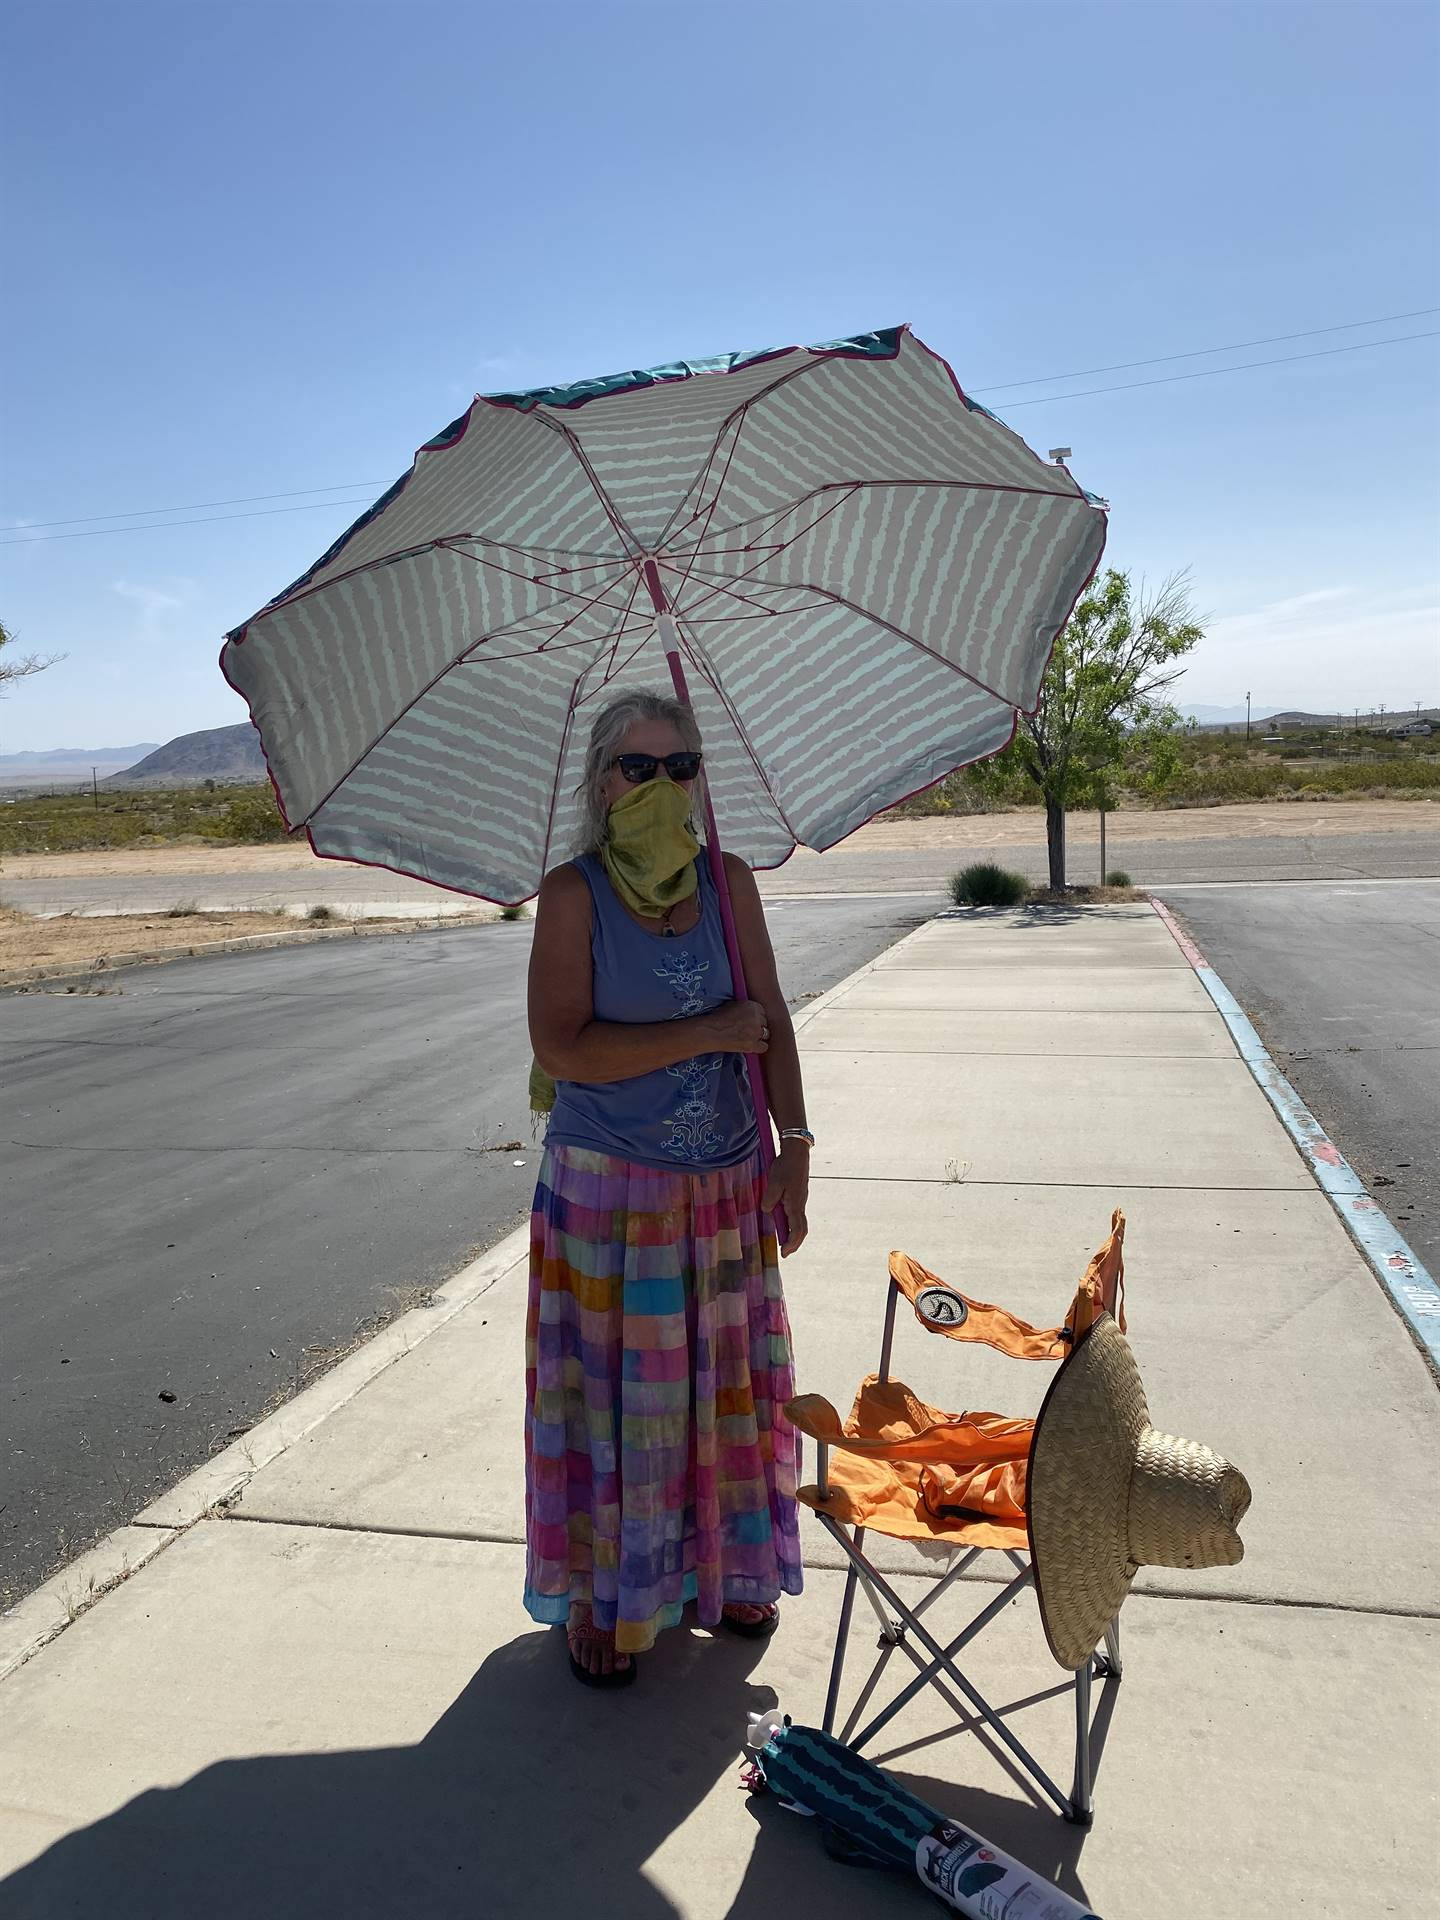 Mrs. Pfarr says hello to students from the shade of her umbrella